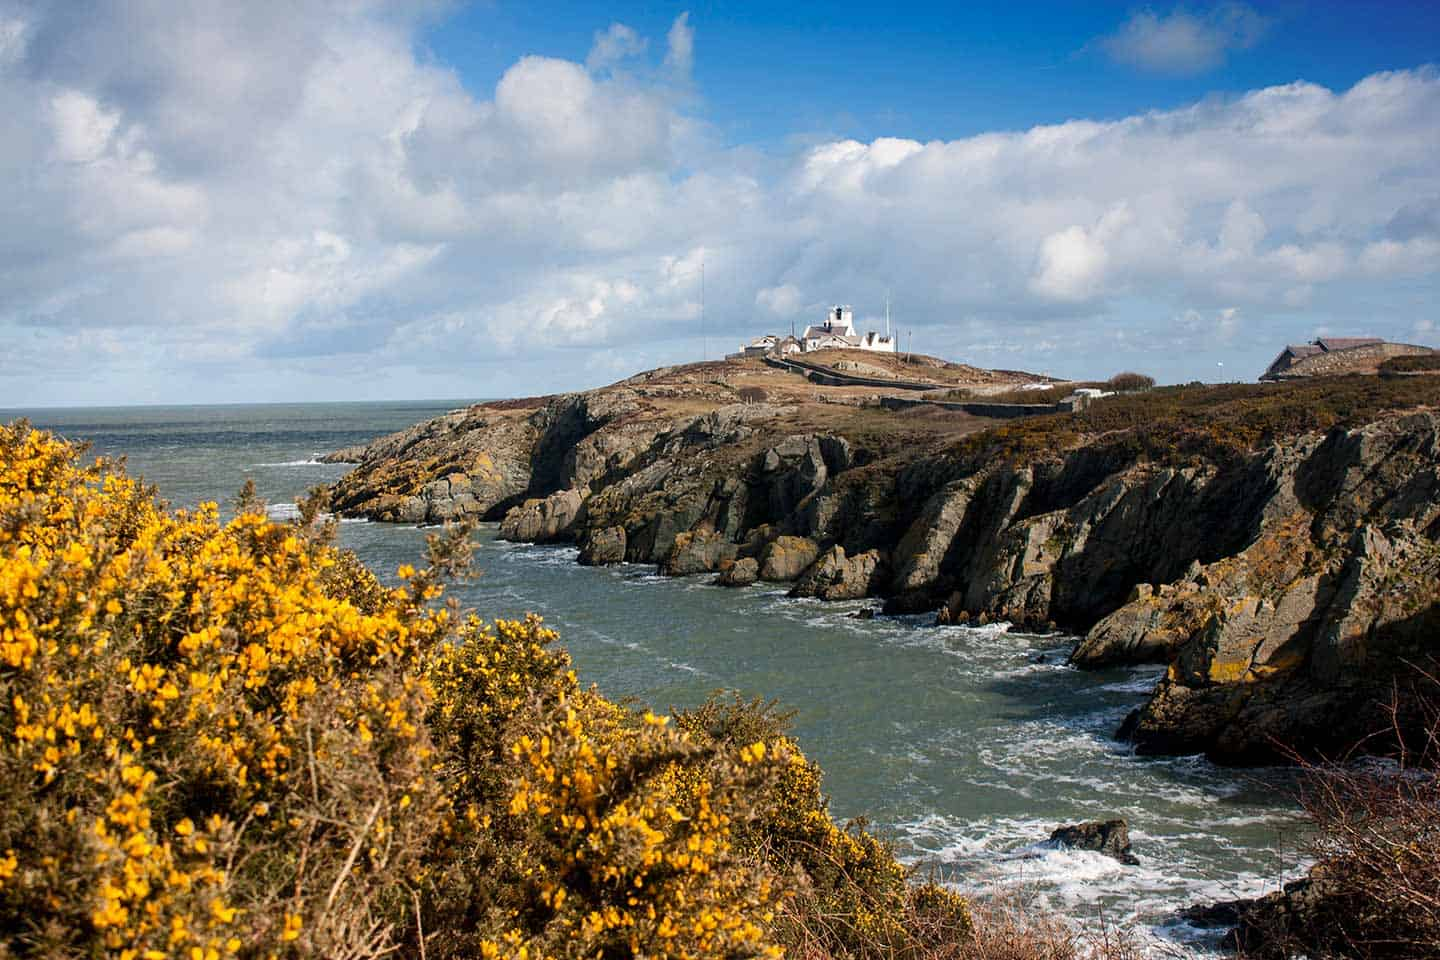 Image of Point Lynas lighthouse, Anglesey